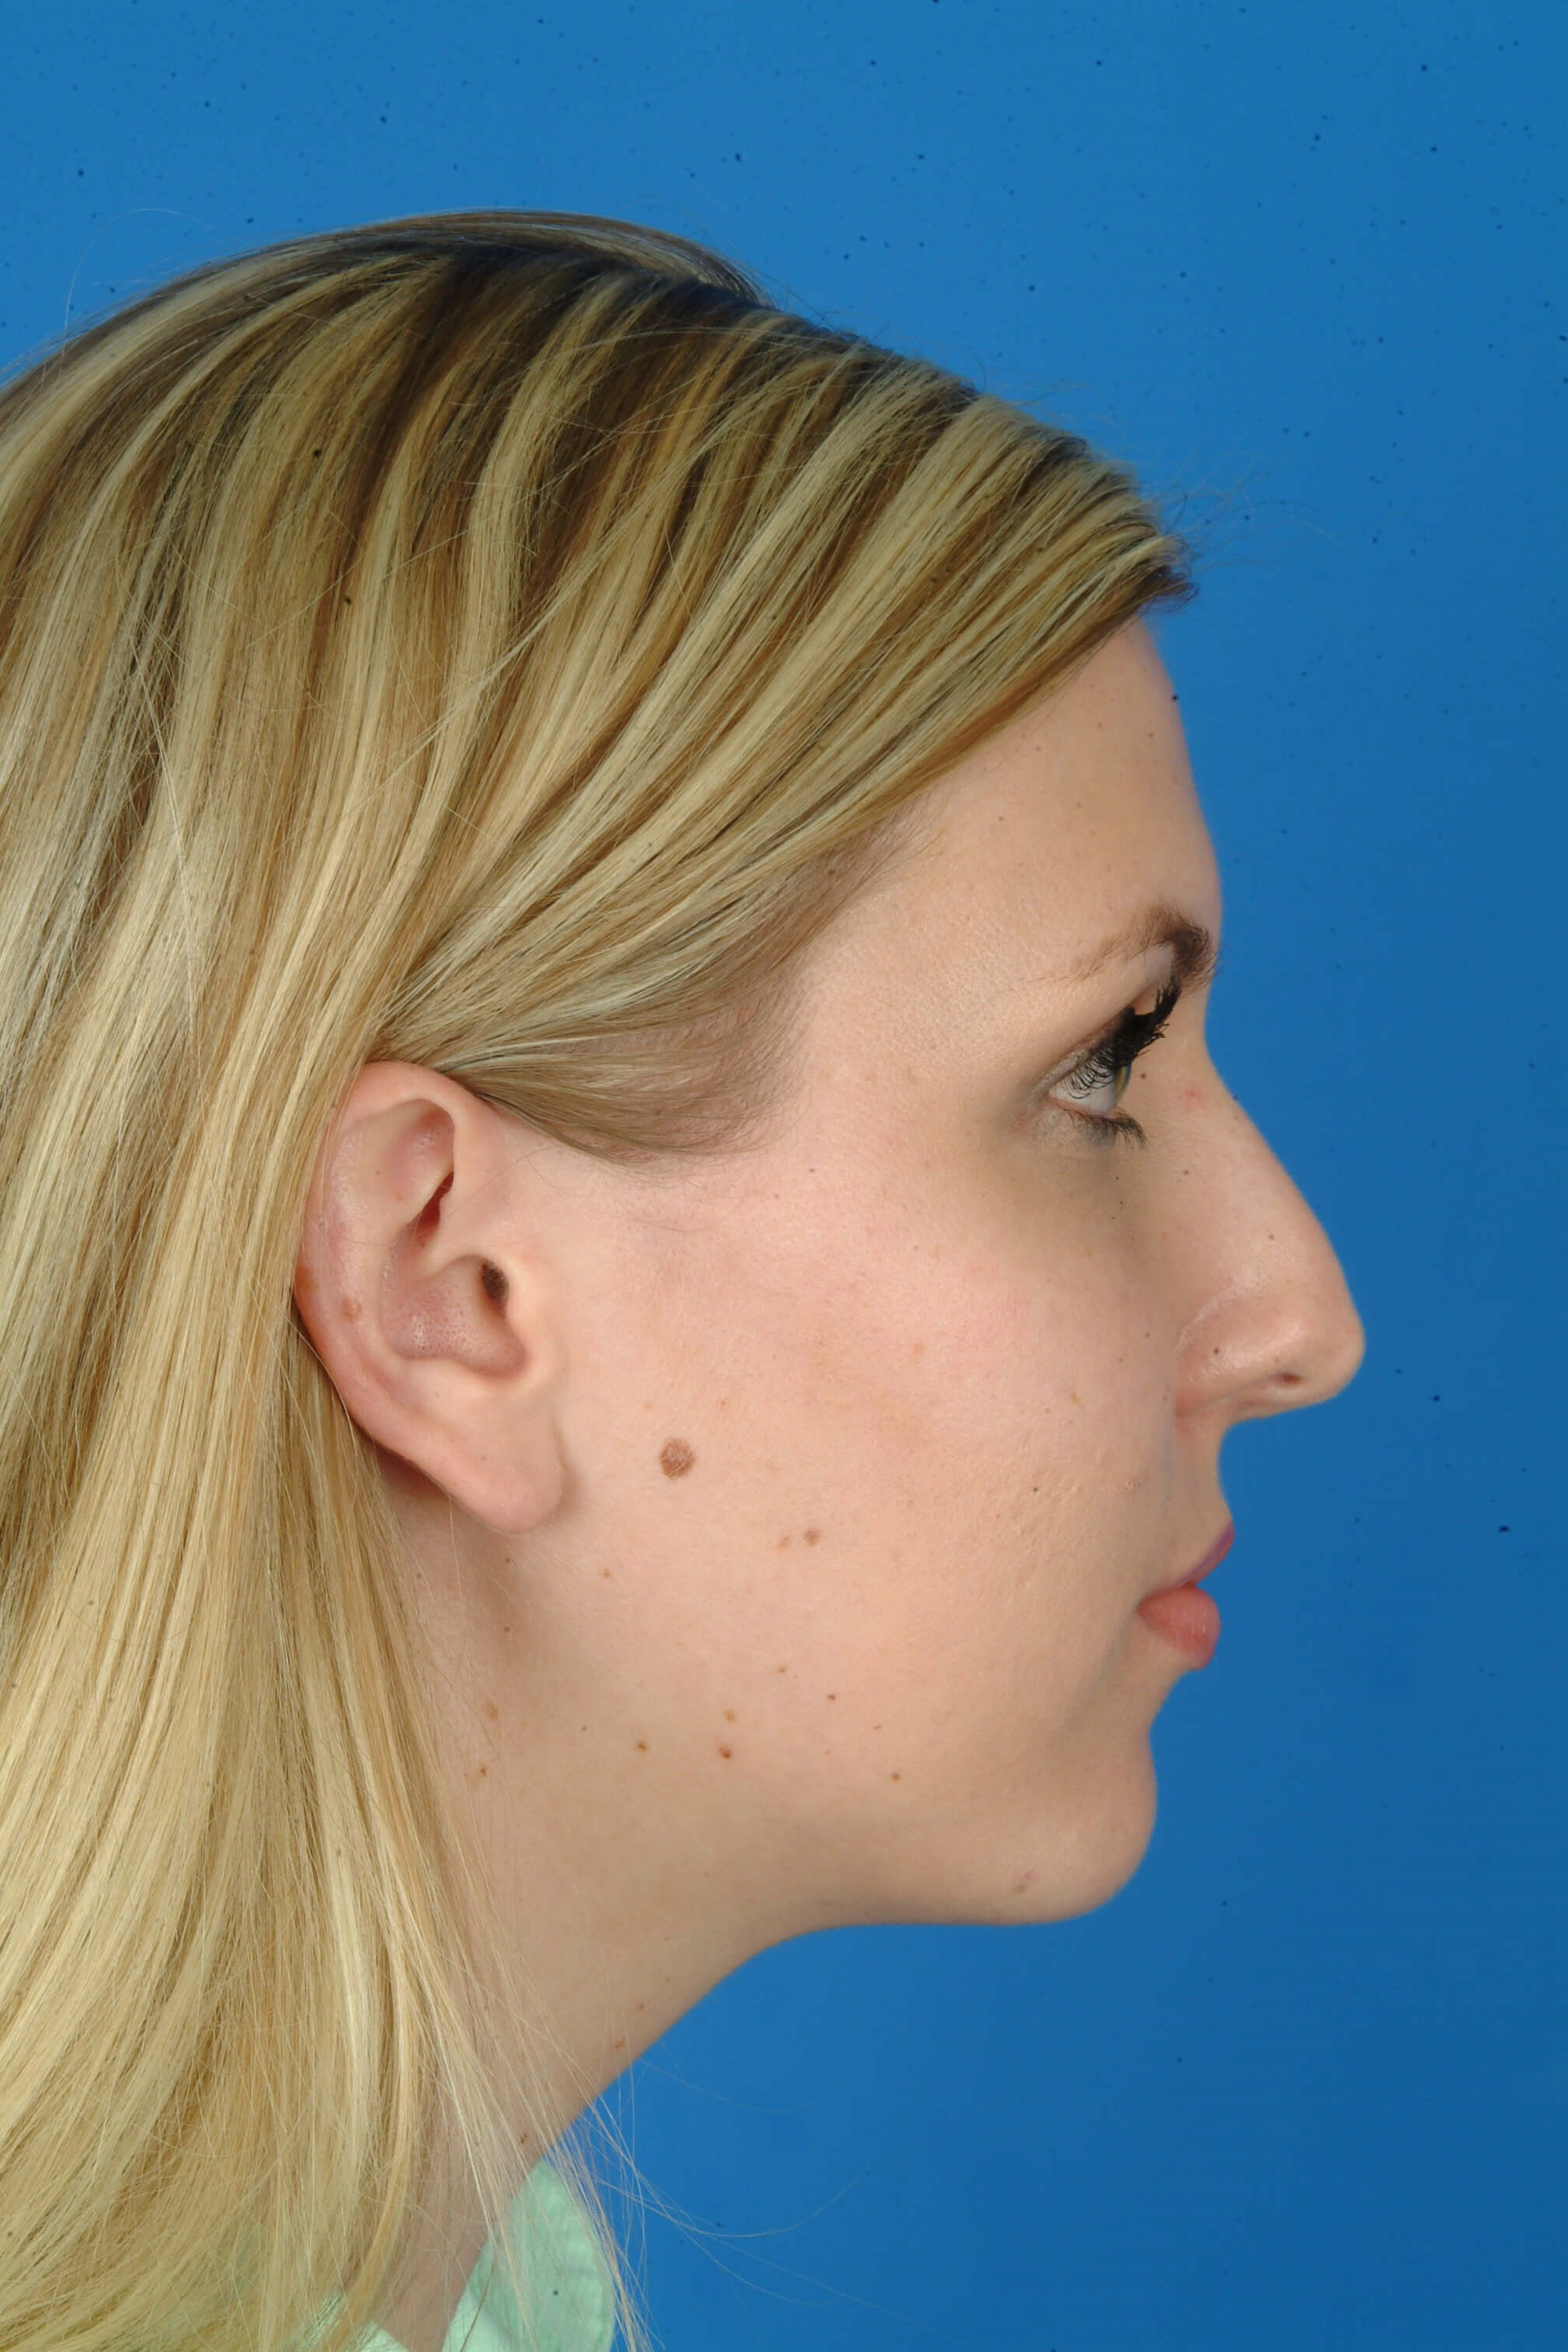 Side View Before Revision Rhinoplasty